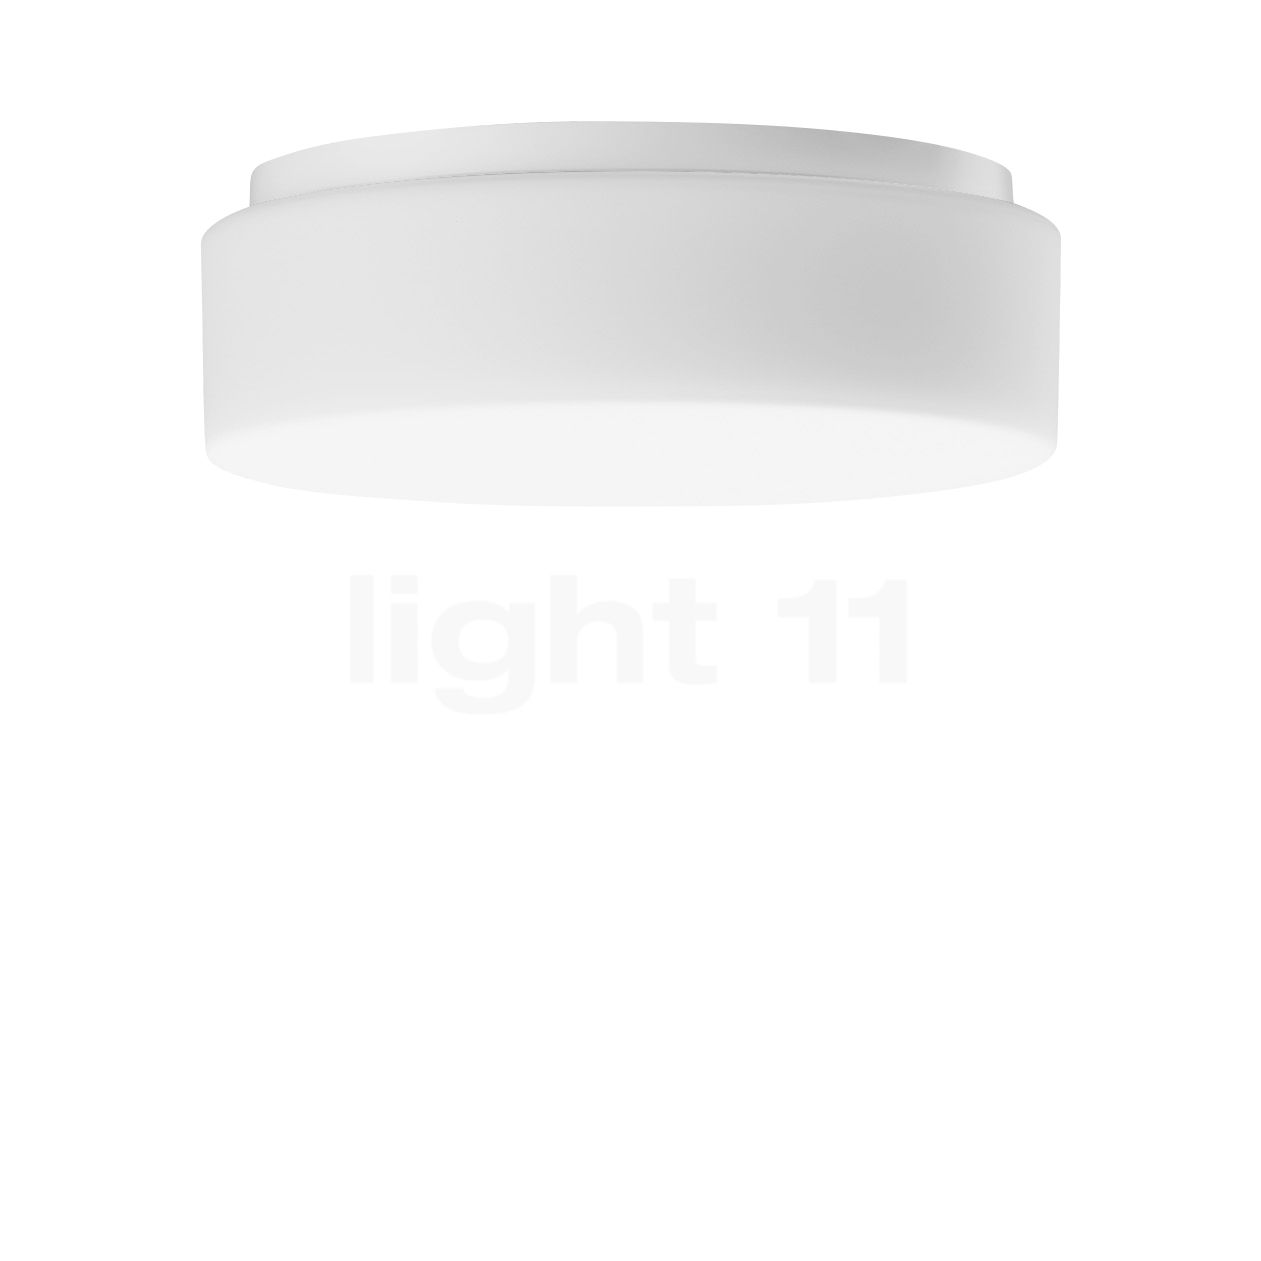 Bega Indoor 50655 Decken Wandleuchte Led Light11 De